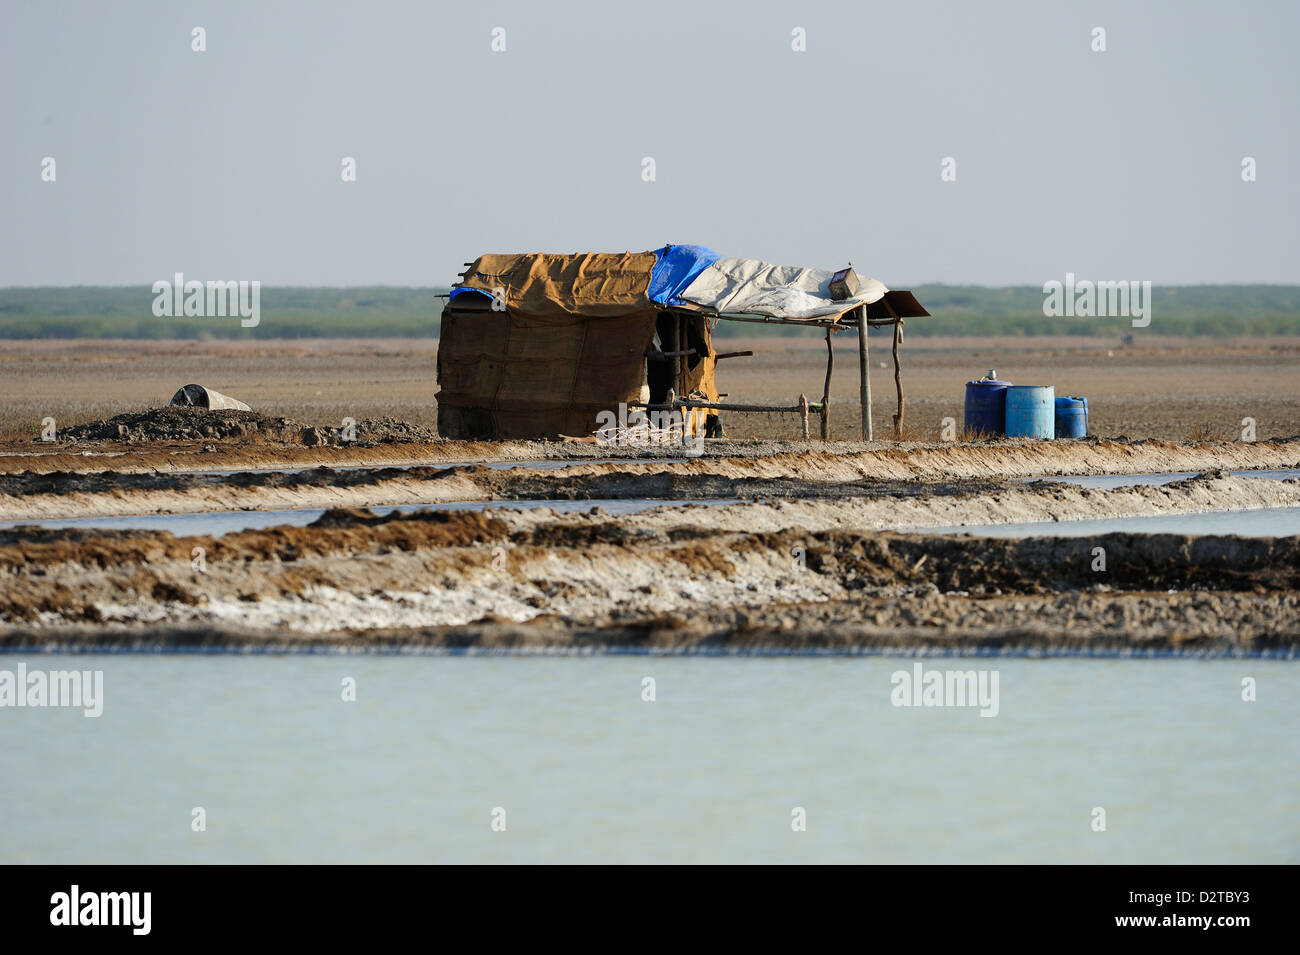 Thatched hut, home of the salt workers in Little Rann of Kutch, Gujarat, India, Asia - Stock Image